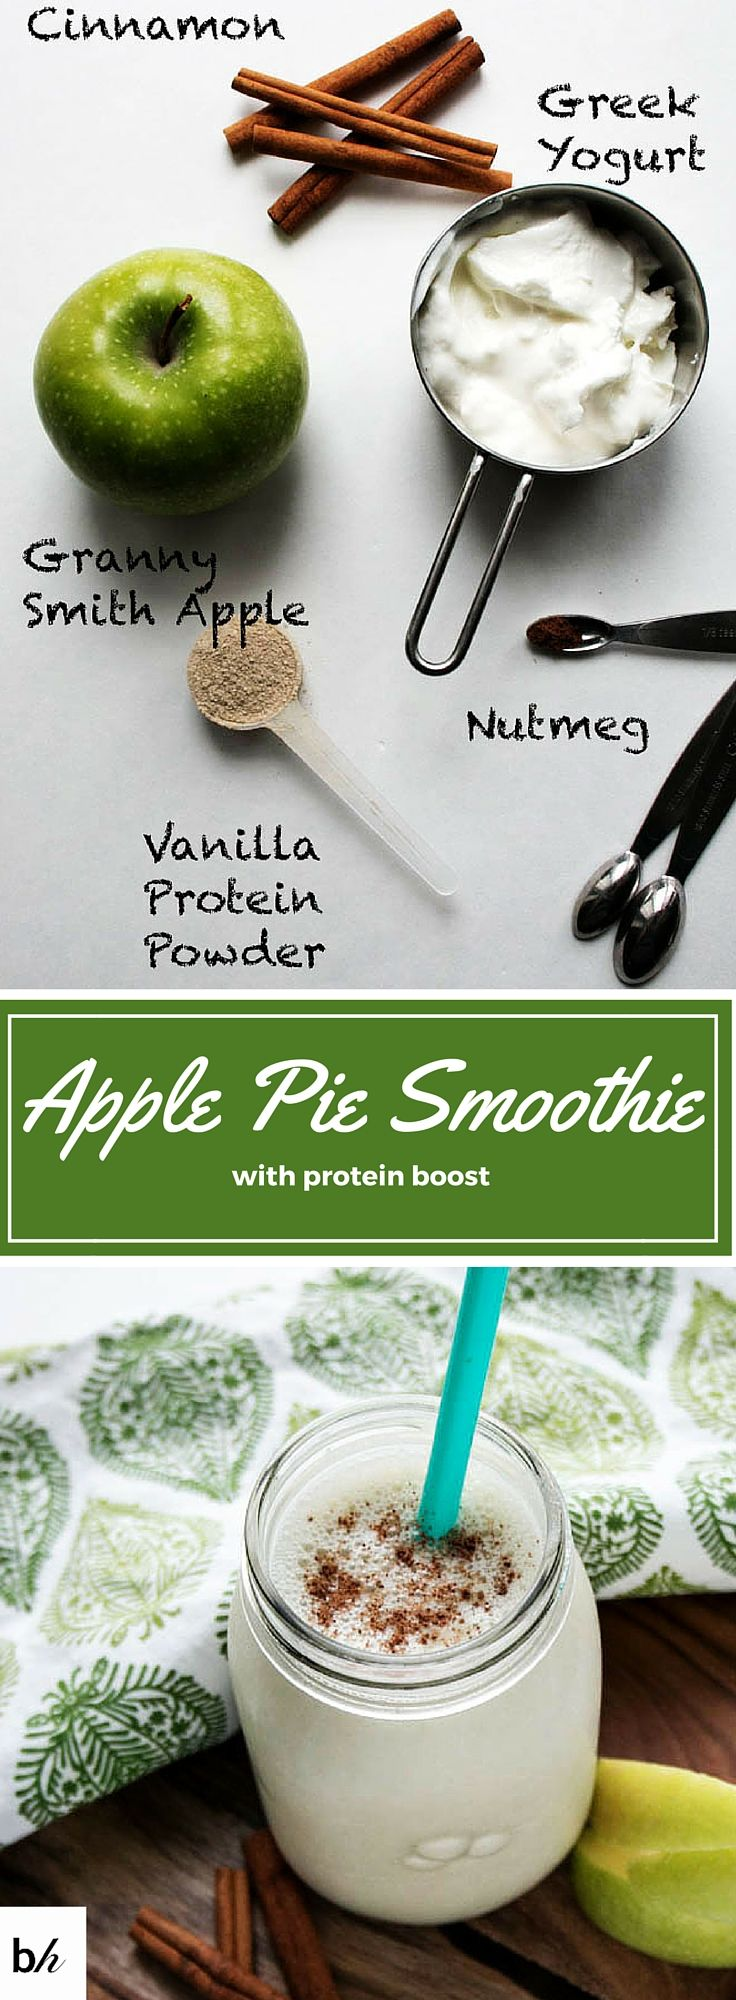 Satisfy your apple pie craving with a simple, delicious protein packed apple pie smoothie.